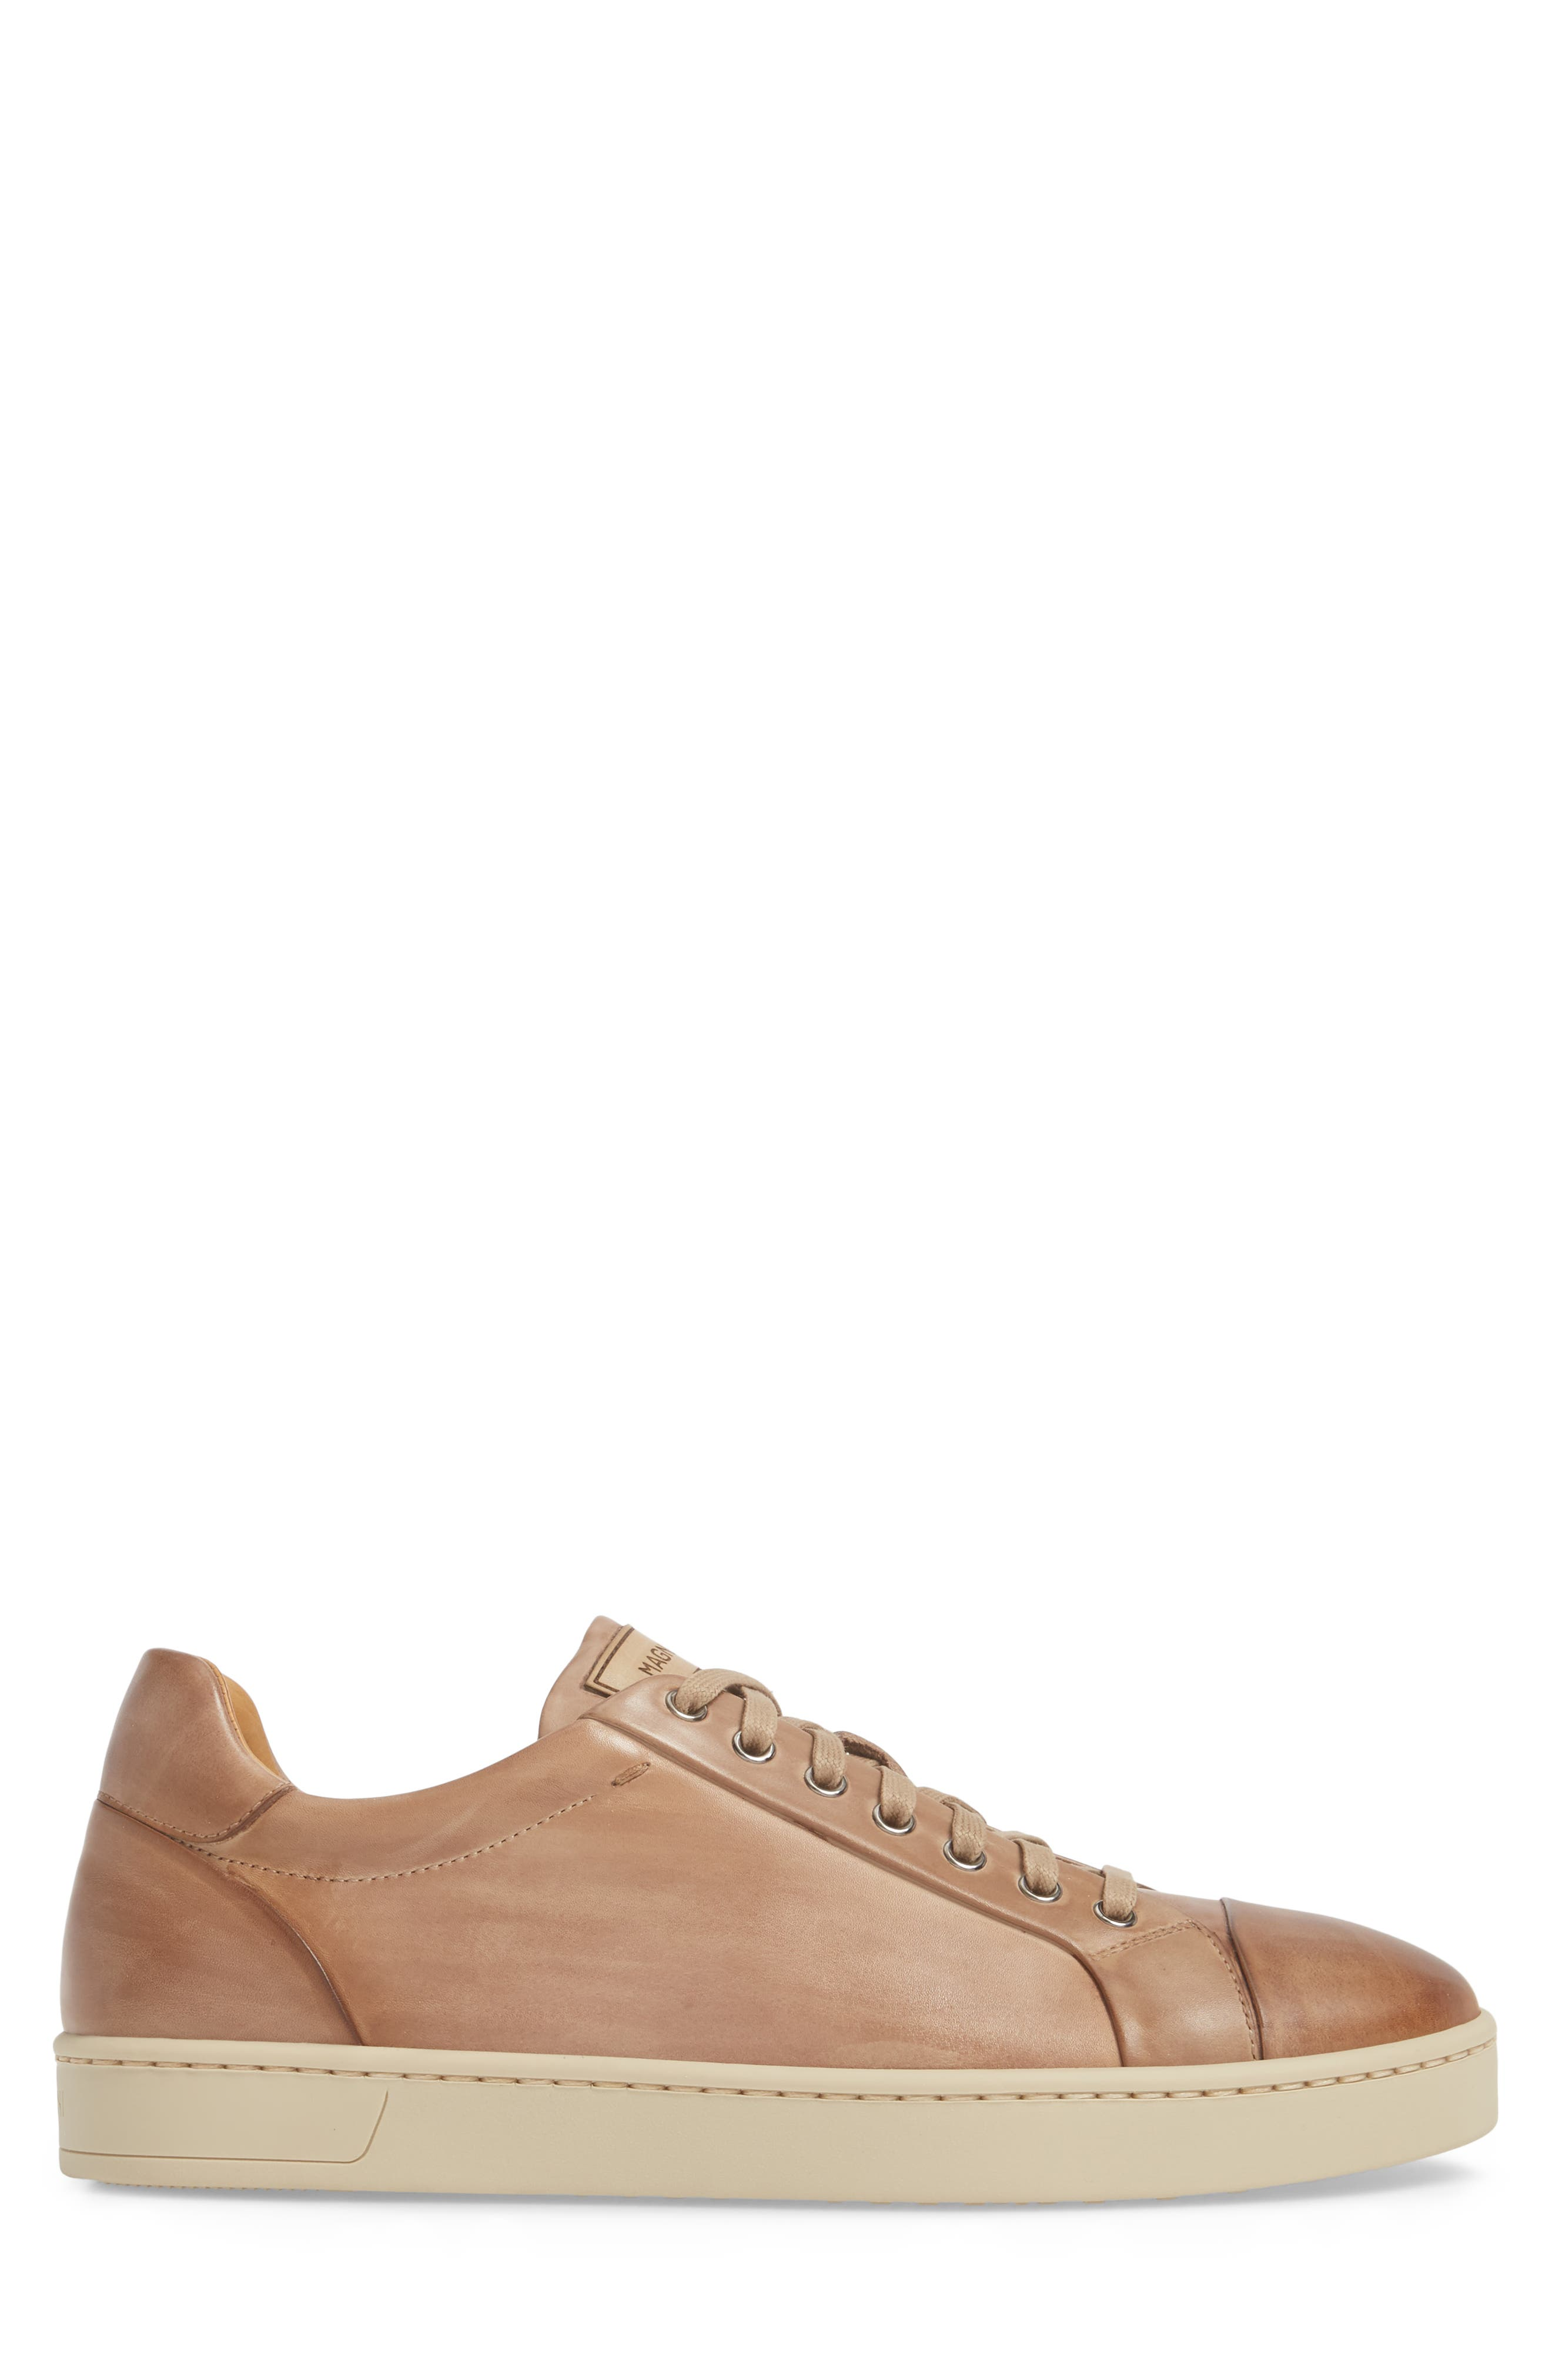 Erardo Low Top Sneaker,                             Alternate thumbnail 3, color,                             Taupe/ Taupe Leather